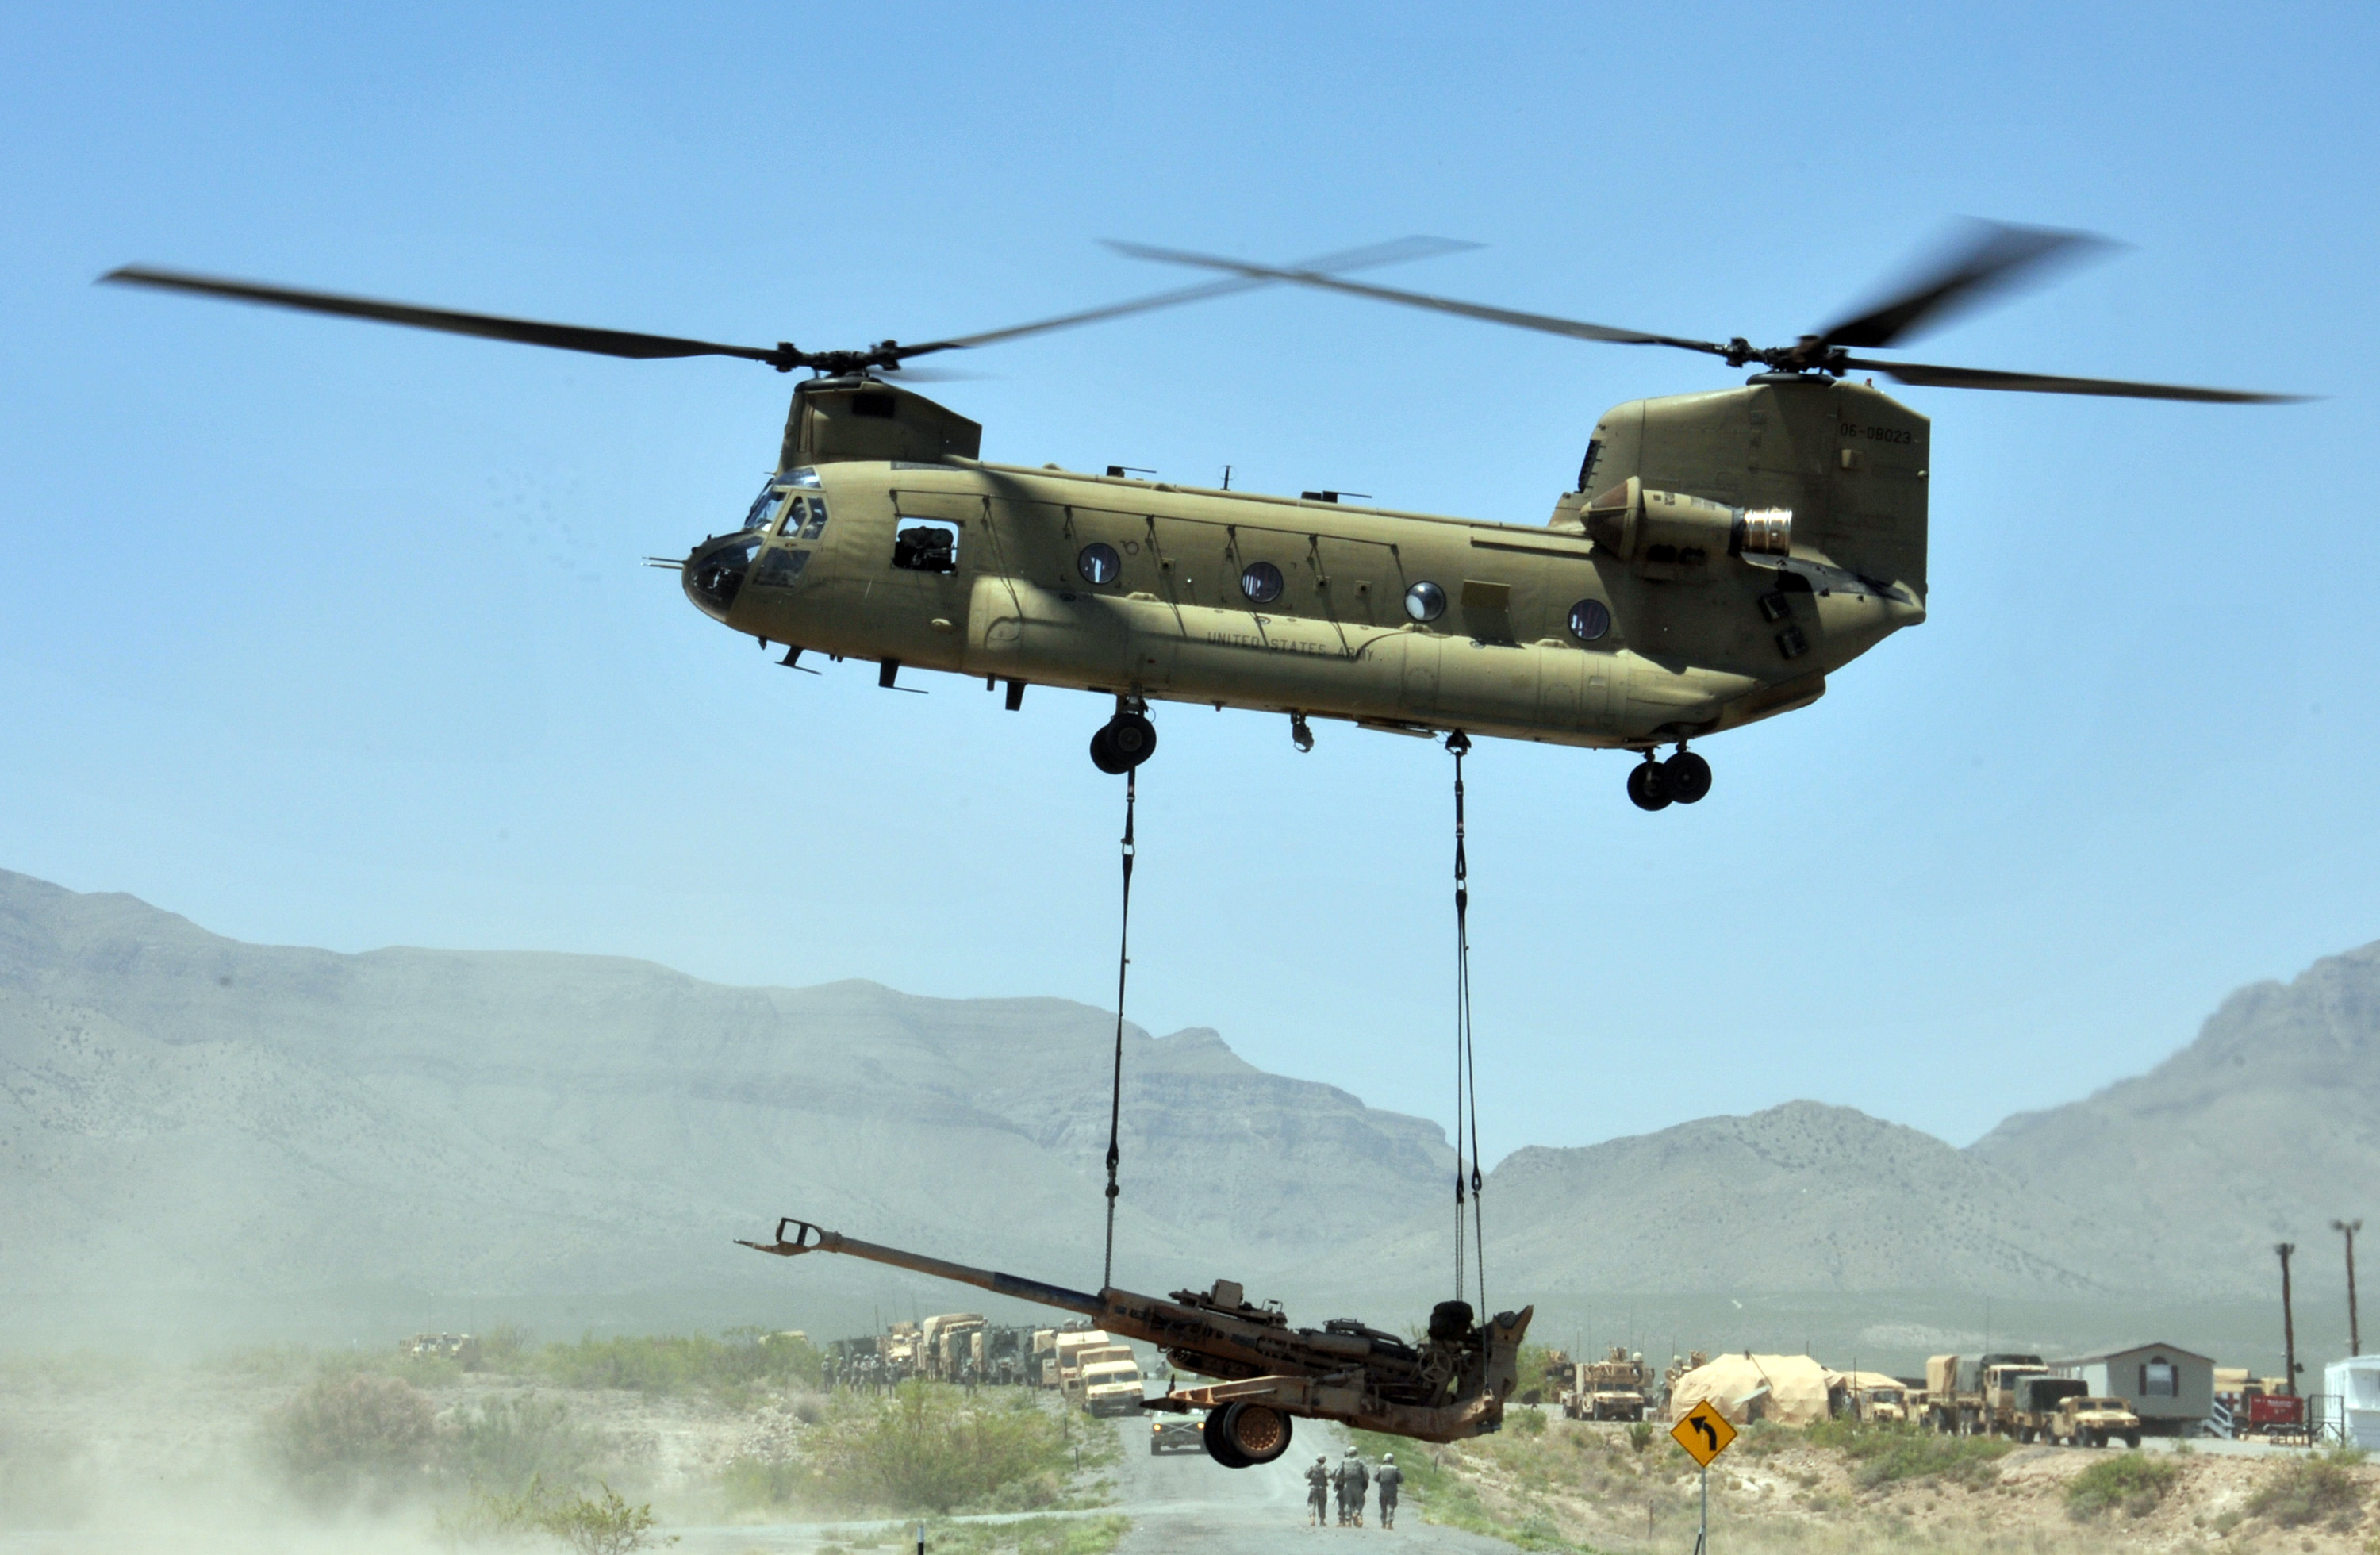 File:Flickr - The U.S. Army - Slingload operations (1).jpg ...